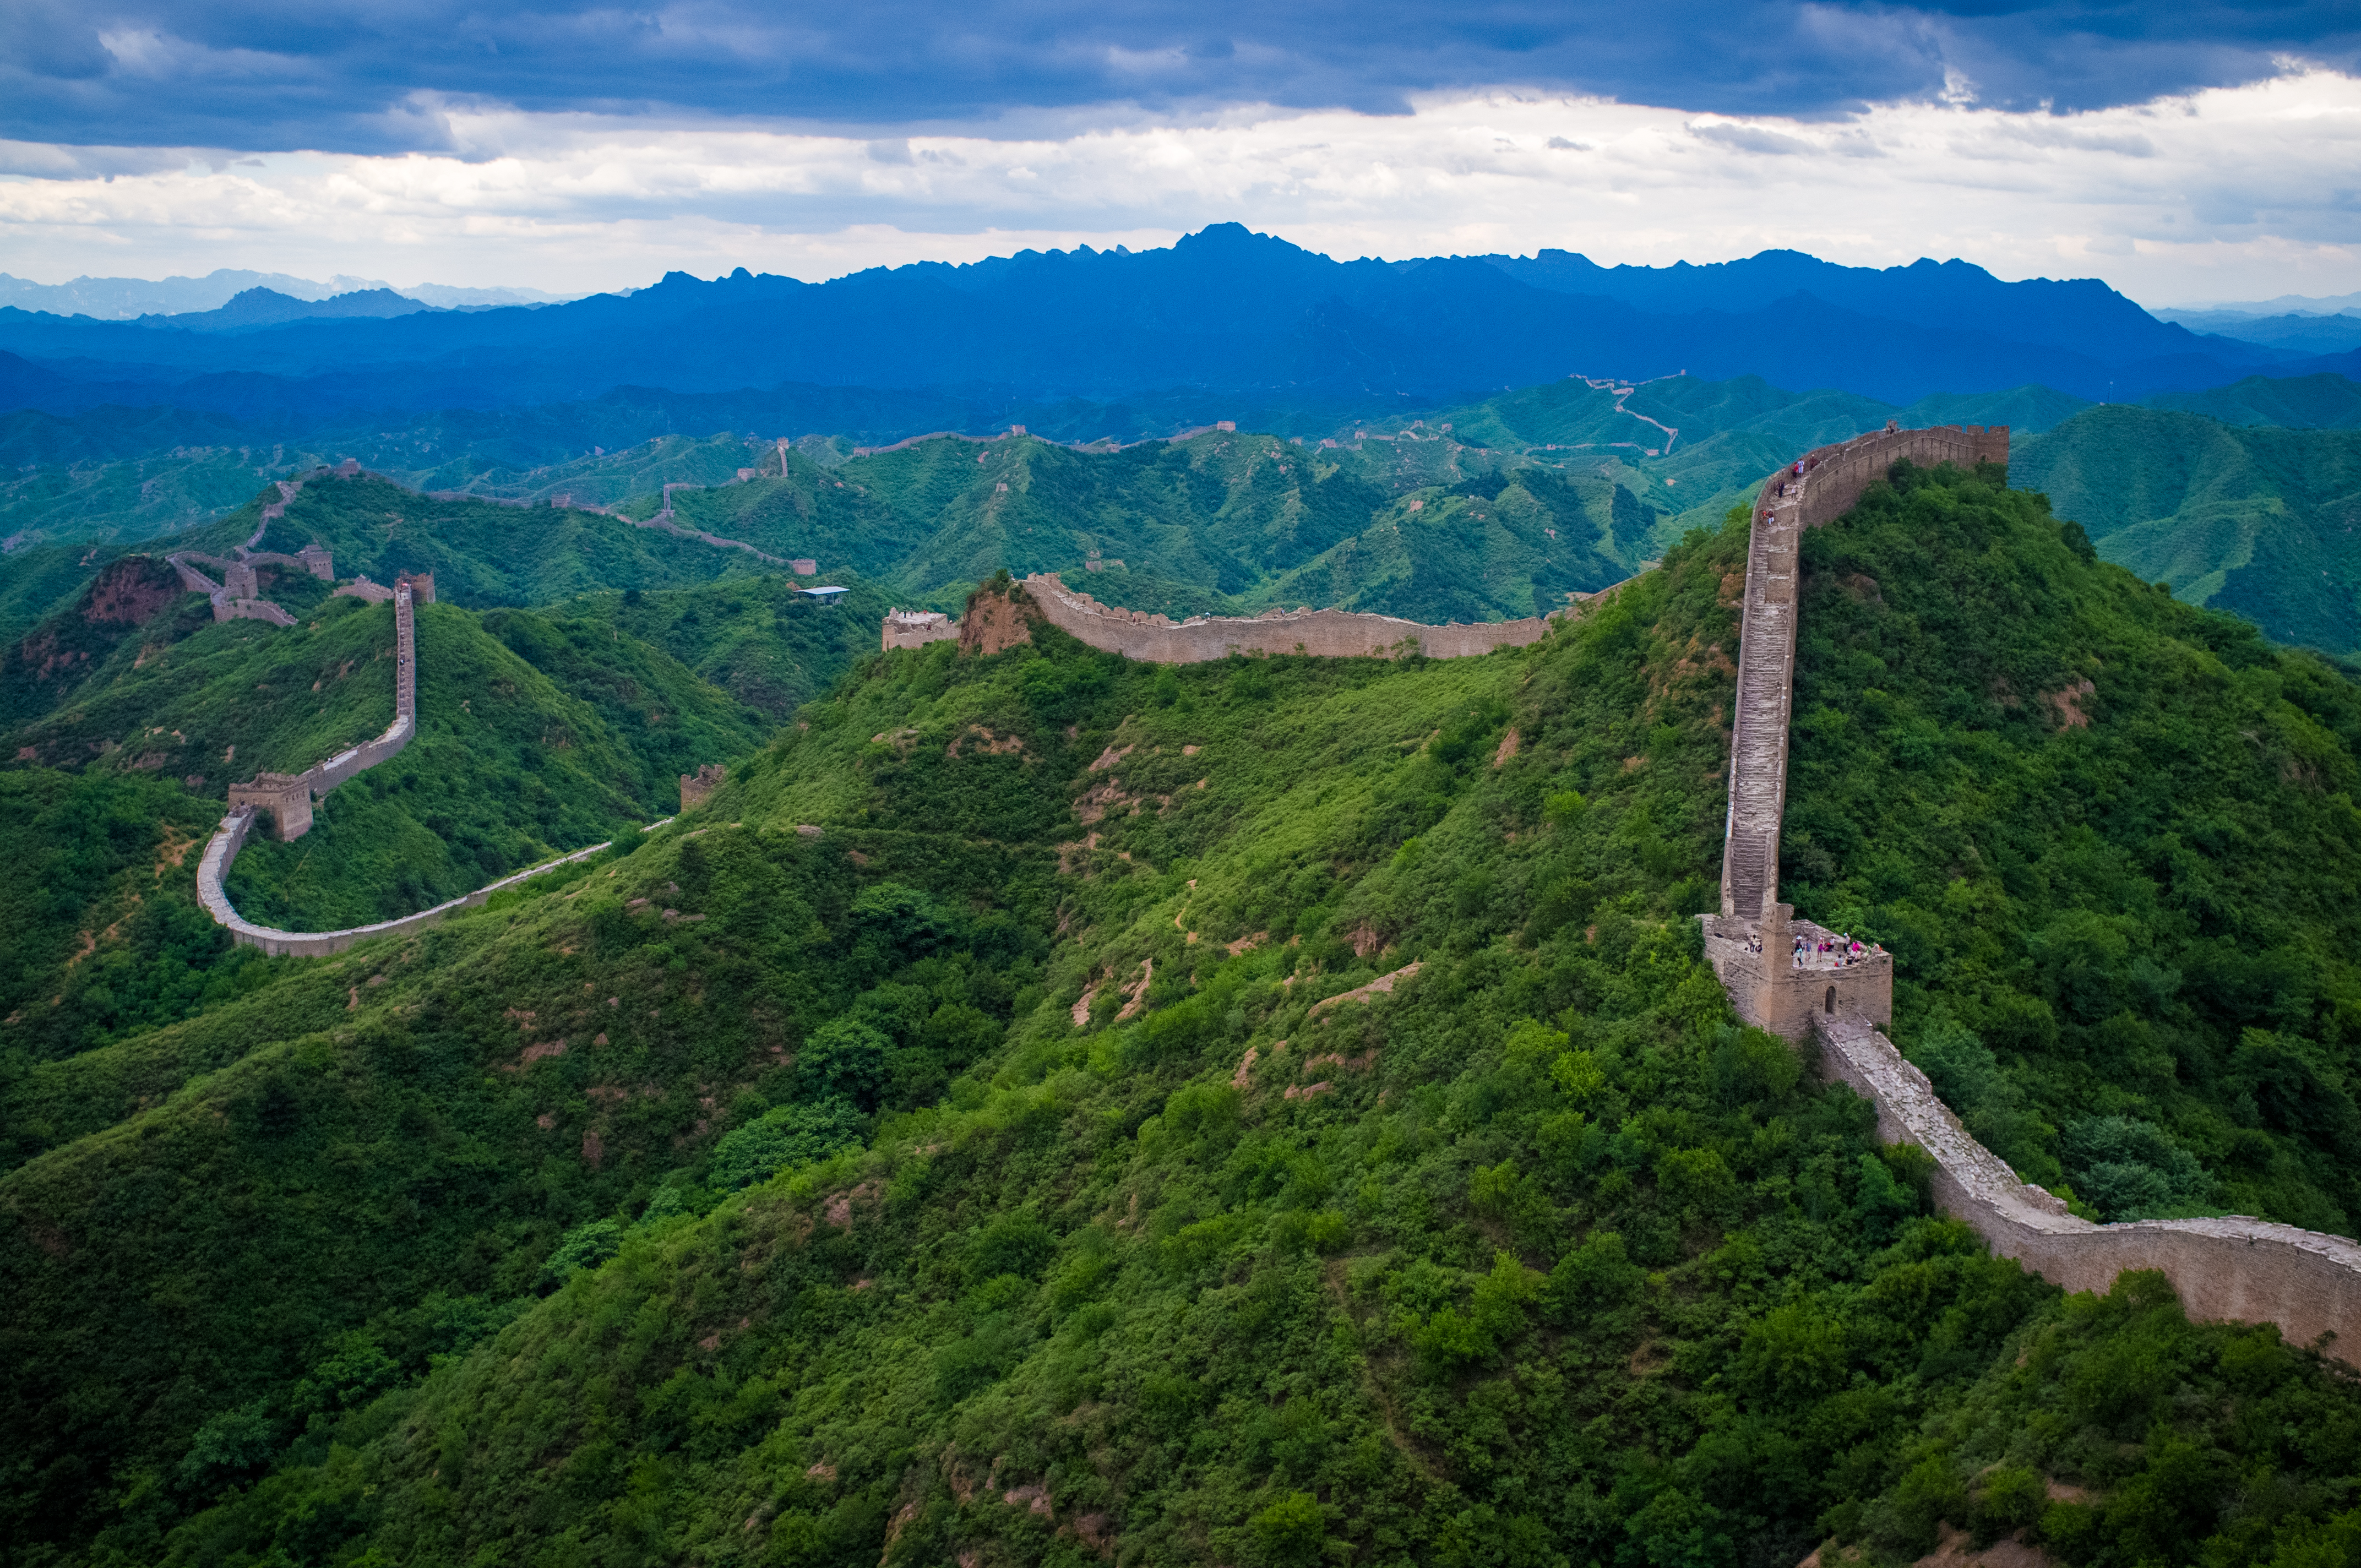 Description The Great Wall of China at Jinshanling.jpg